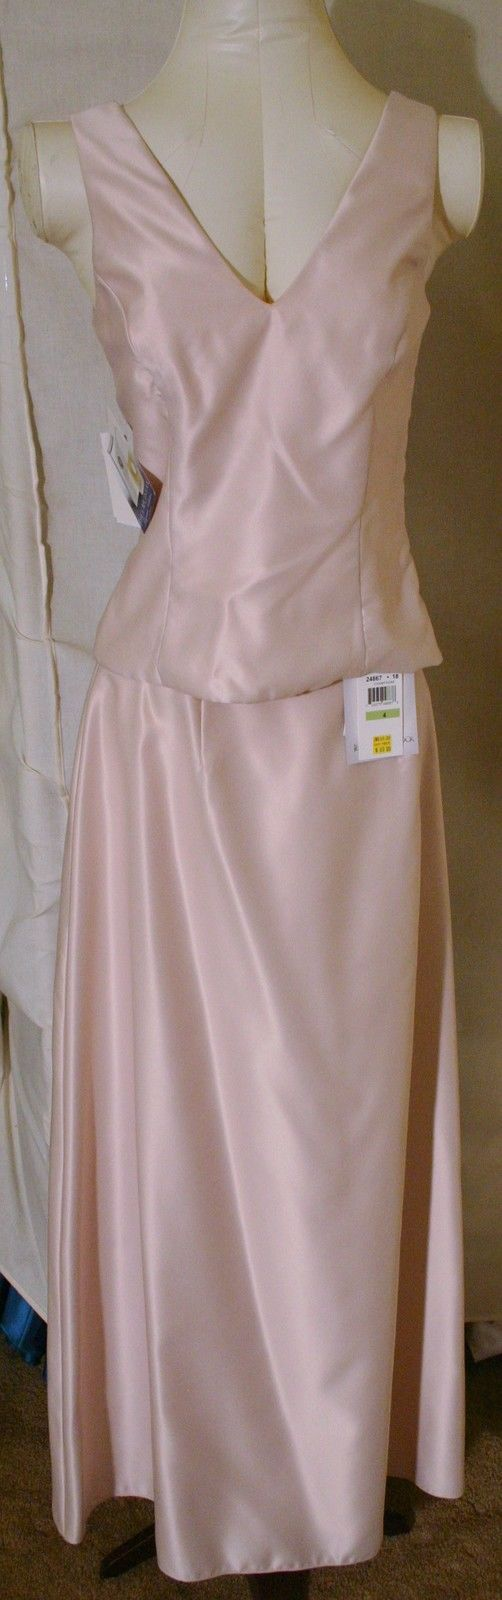 JESSICA McCLINTOCK Champagne Top and Skirt NWT Siz